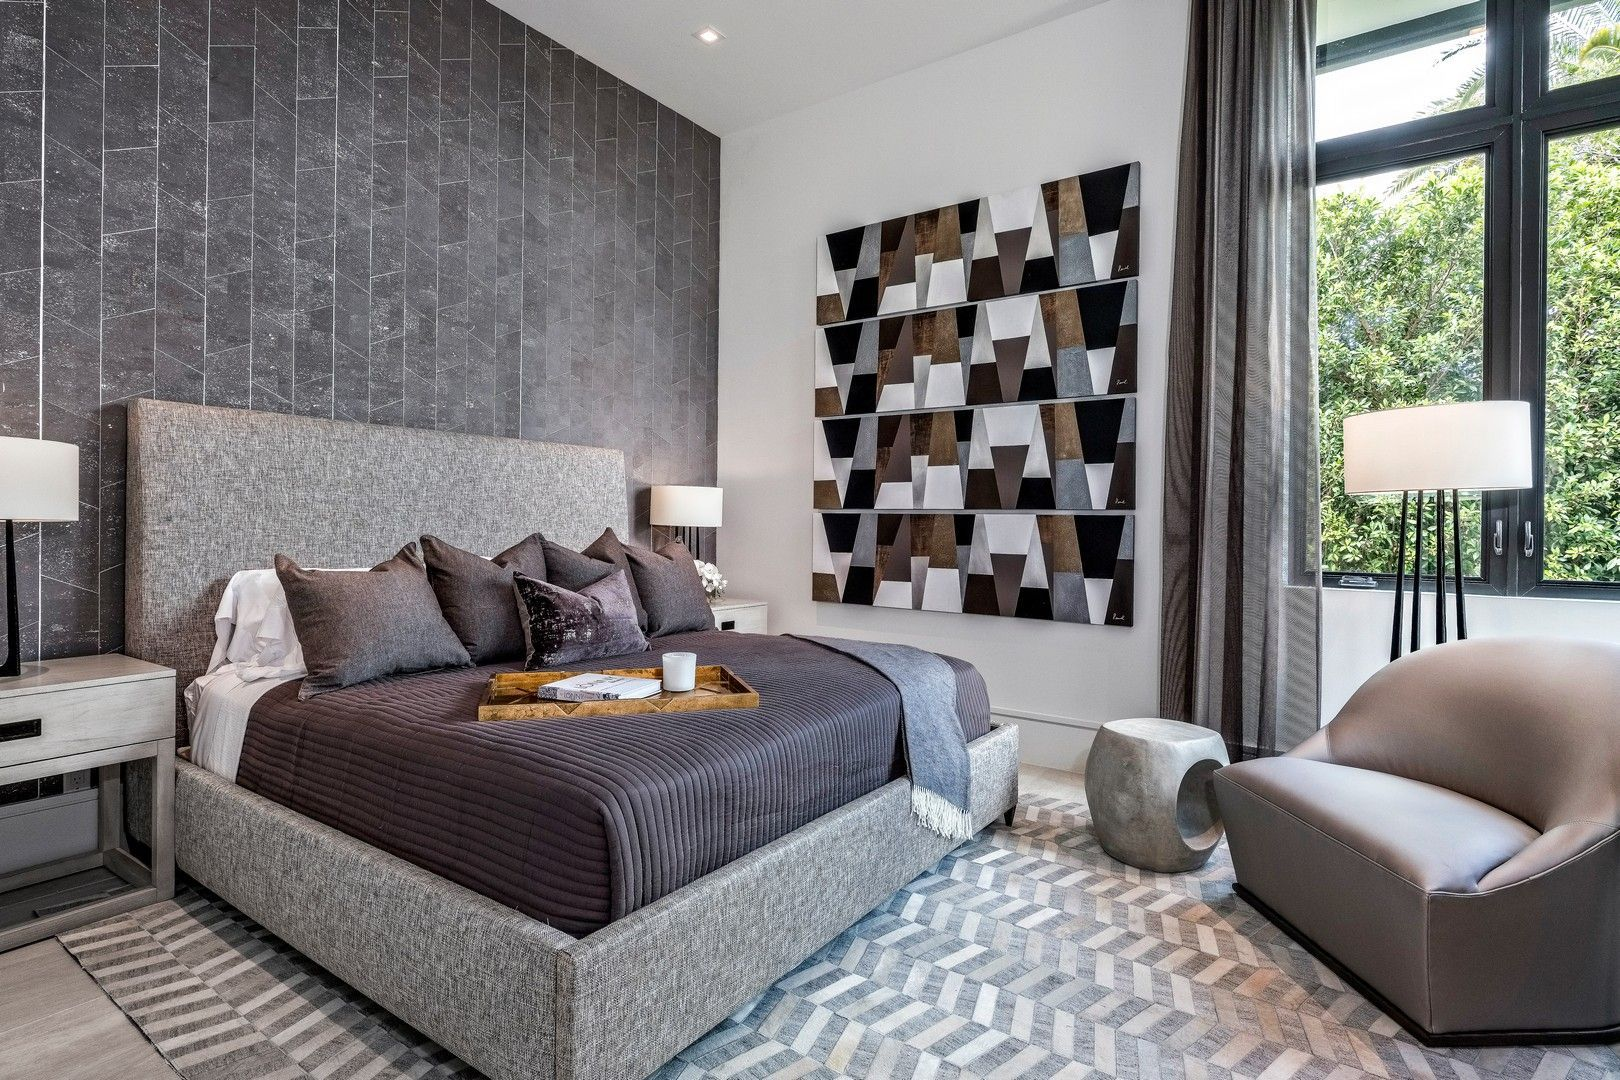 The color scheme in this bedroom makes for a bold look and a relaxing environment.  #BedroomDesign #PalmBeachPoloClub #WellingtonFL #InteriorDesign #TheDecoratorsUnlimited #LuxuryLiving #JasonLynn